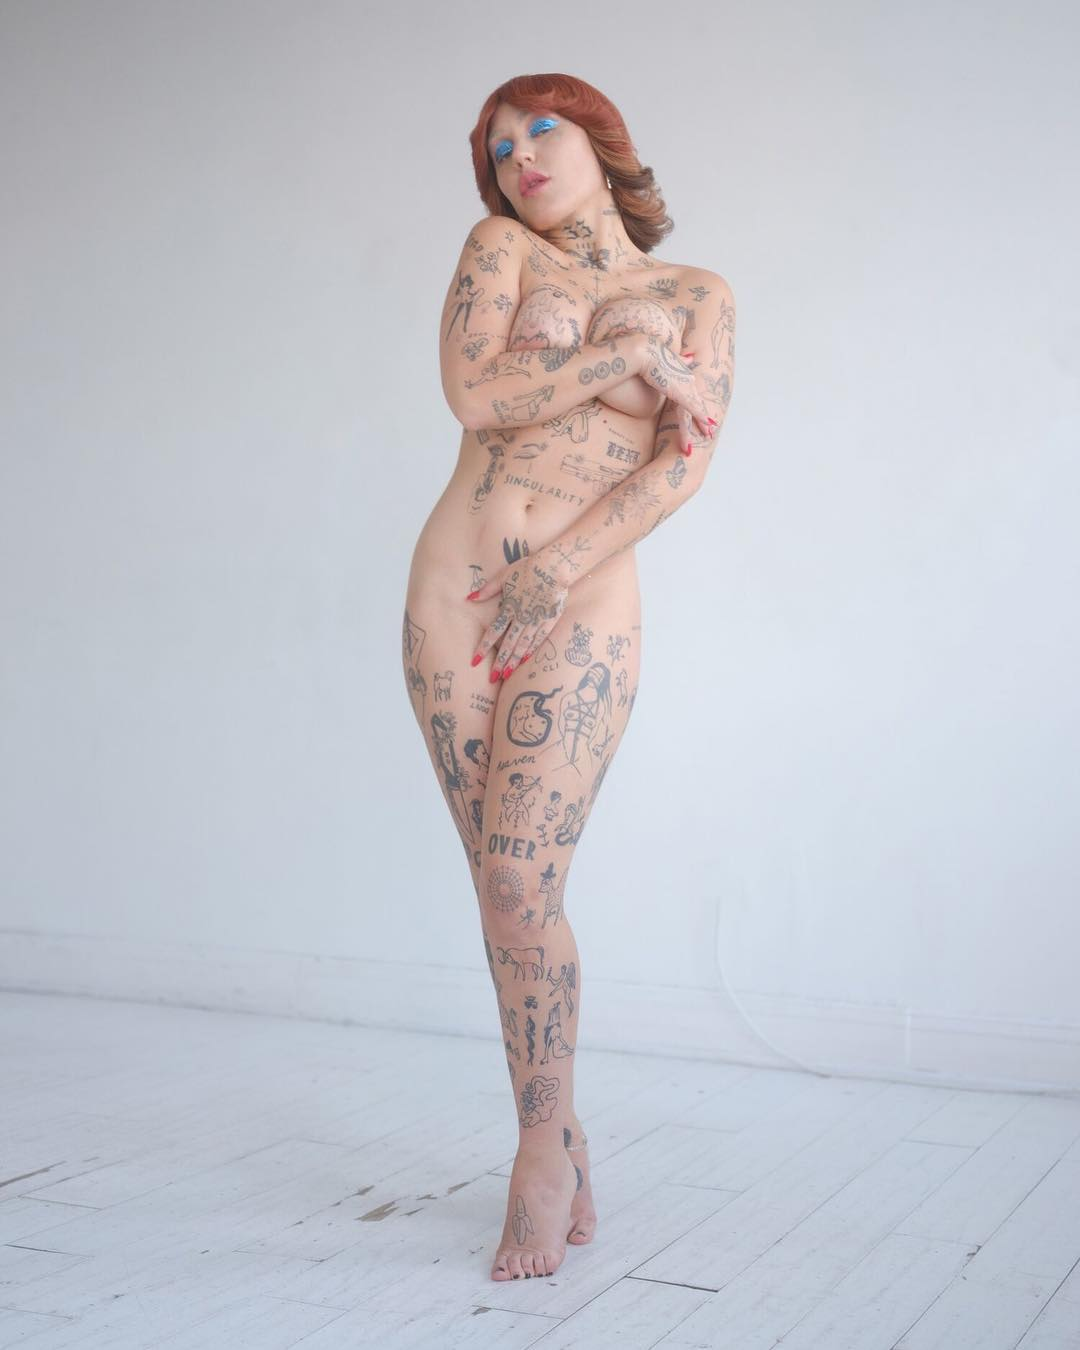 Brooke Candy nude pics (2)